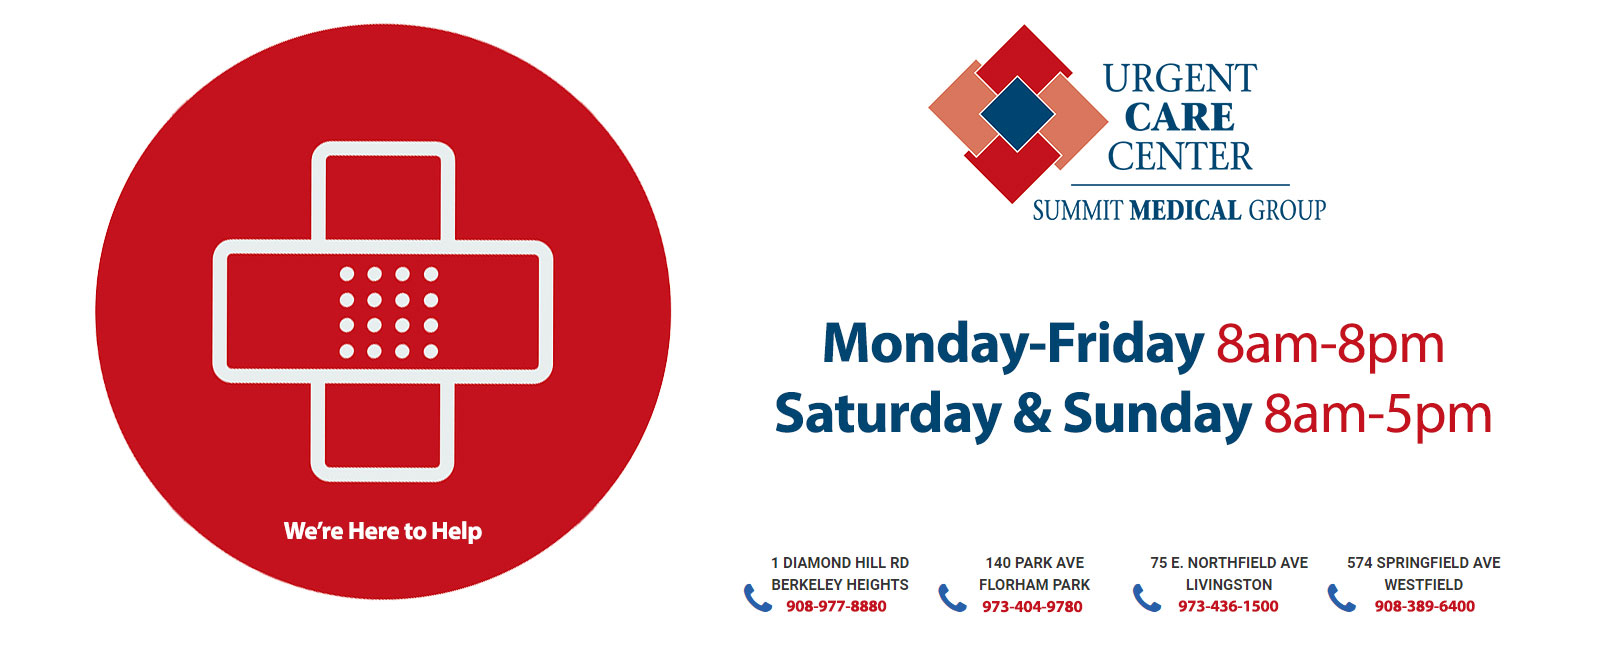 Urgent Care Center: Summit Medical Group - Mon-Fri: 8am-8pm, Sat-Sun: 8am-5pm